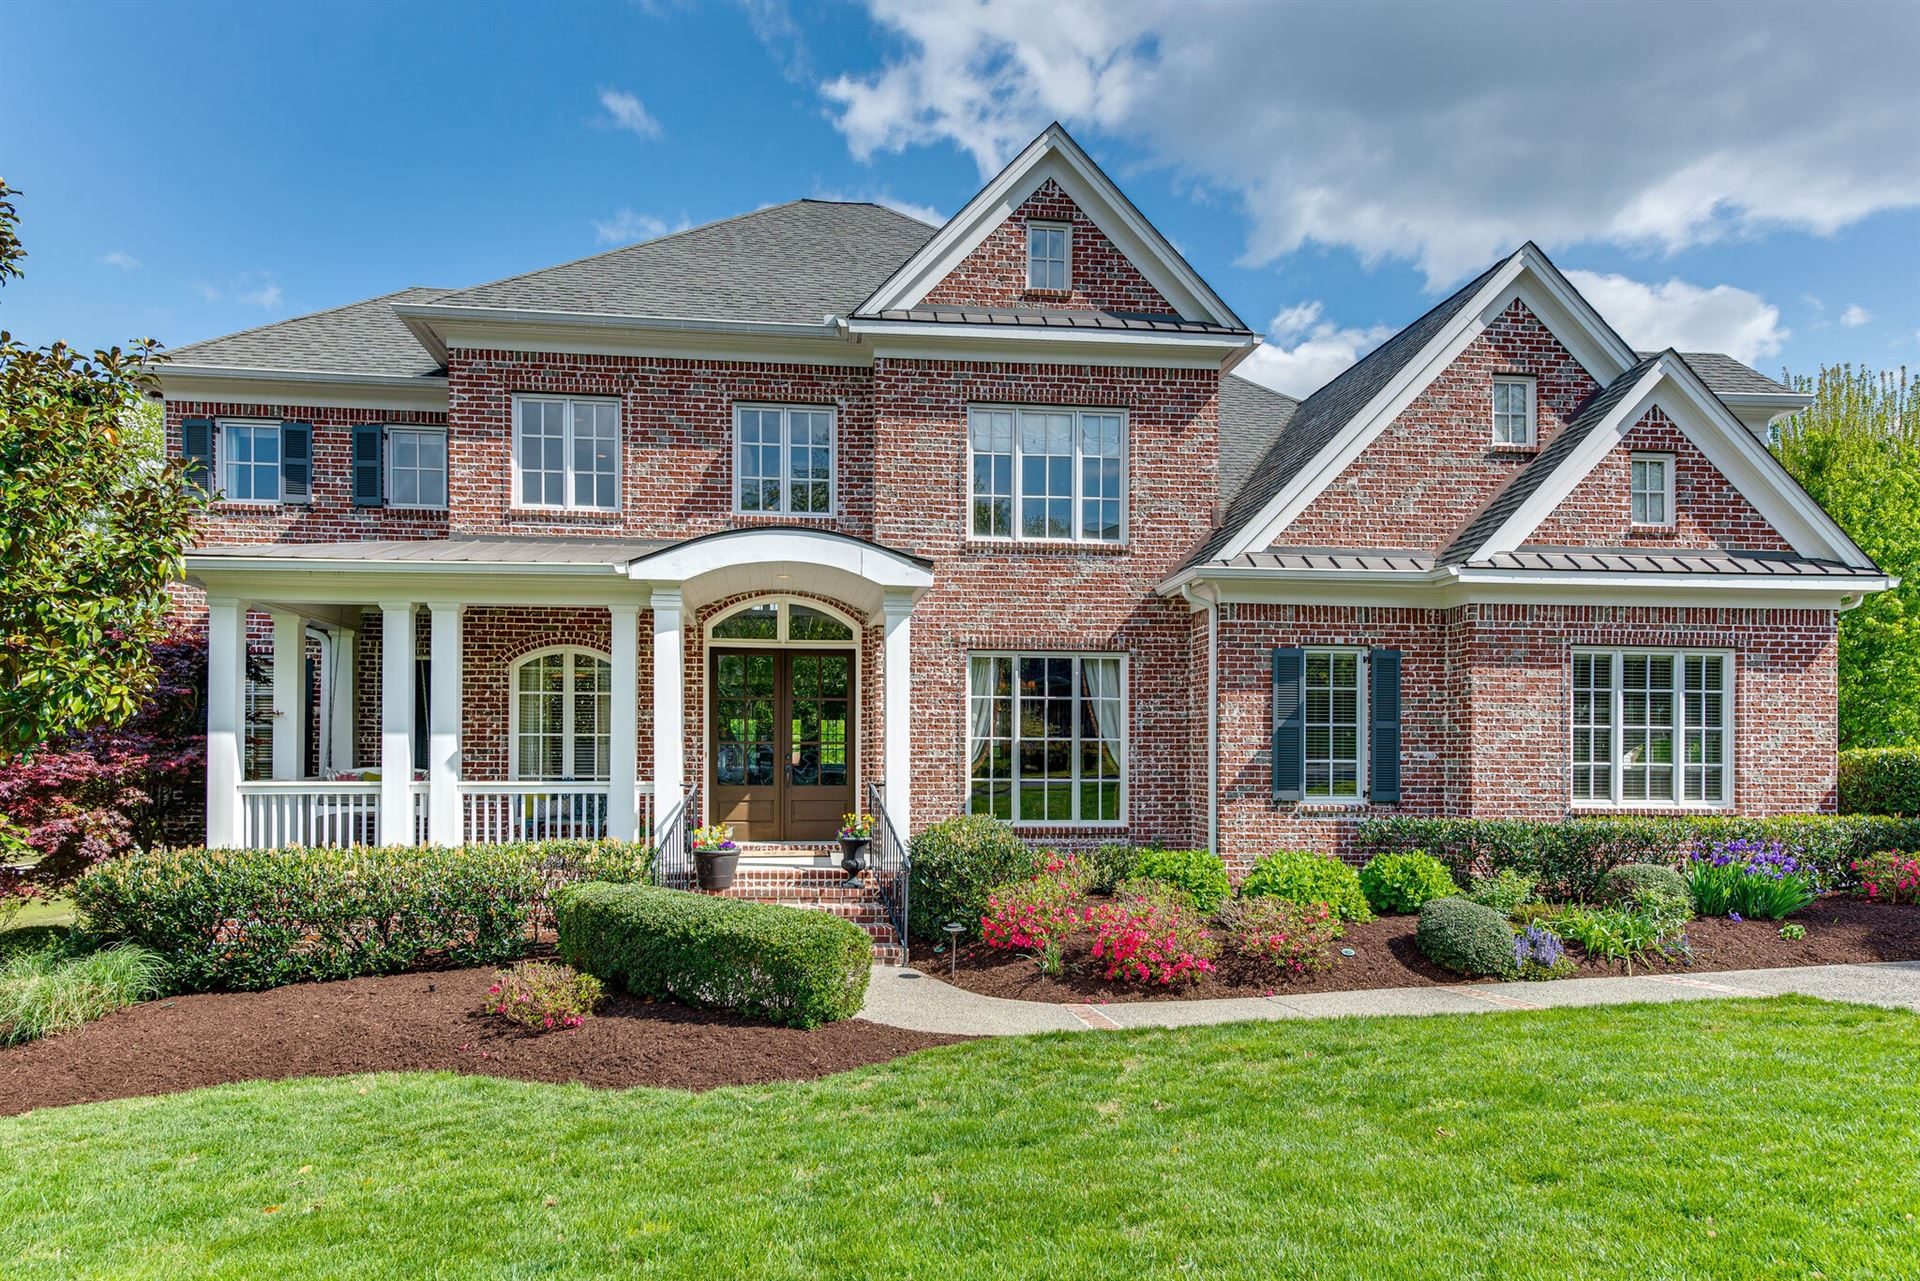 Photo of 18 Angel Trace, Brentwood, TN 37027 (MLS # 2245834)